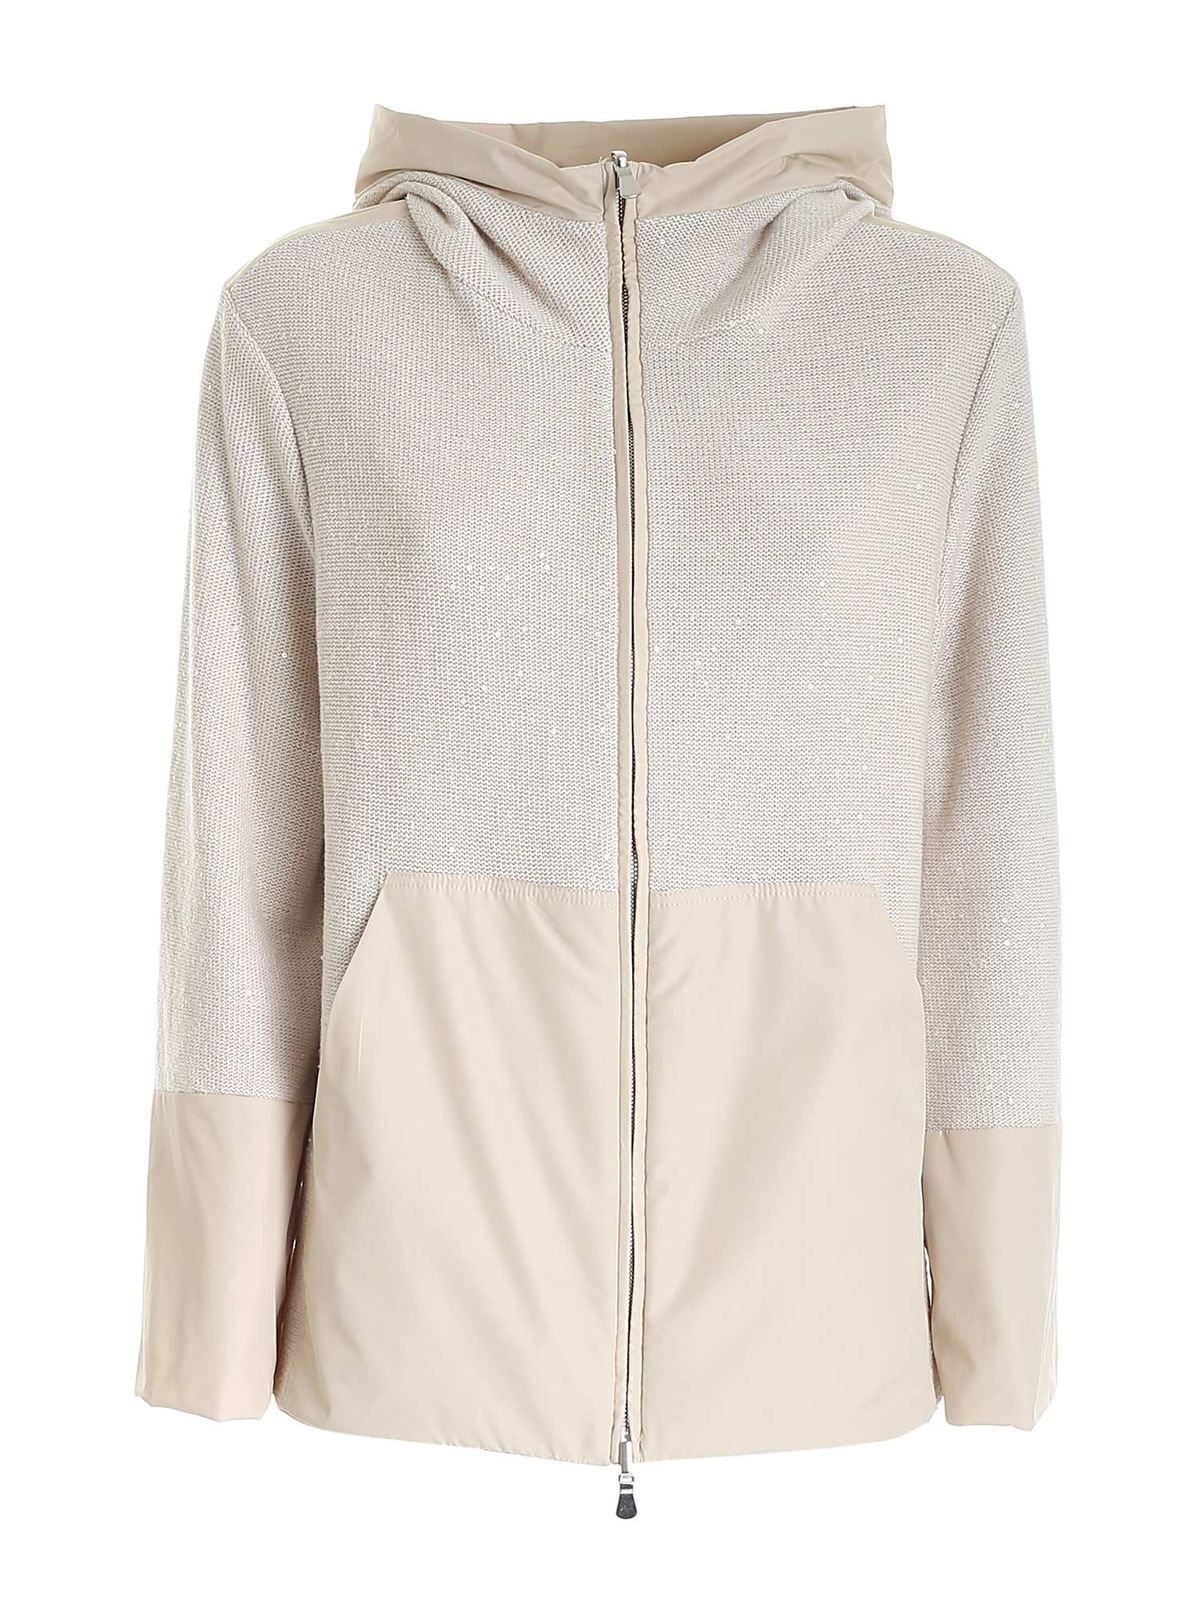 Le Tricot Perugia Cottons REVERSIBLE JACKET IN BEIGE